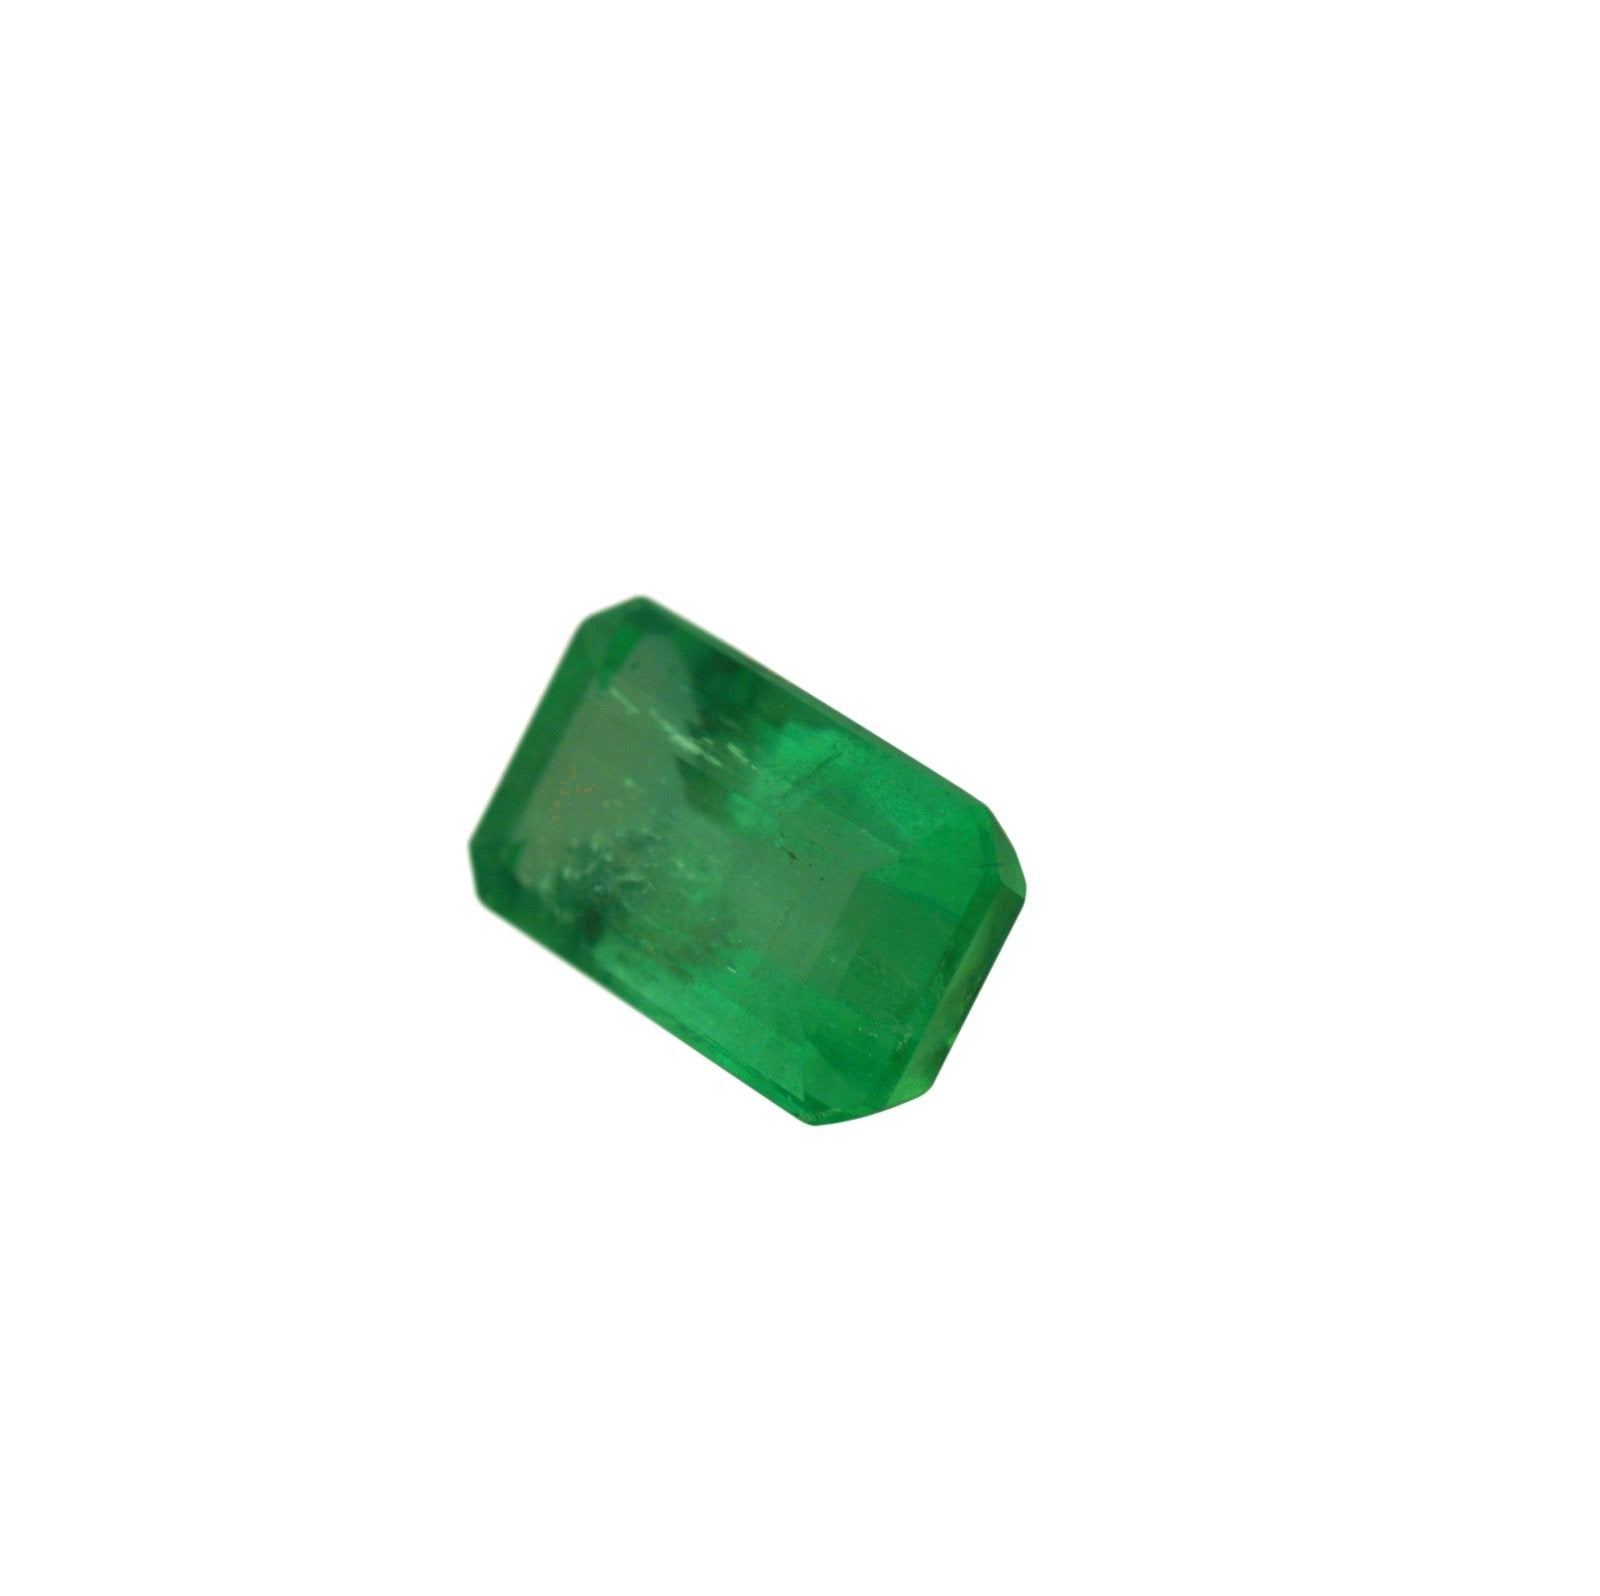 lab cut jewelry pc cts russian aaa emerald dp of created amazon loose gemstone com mm